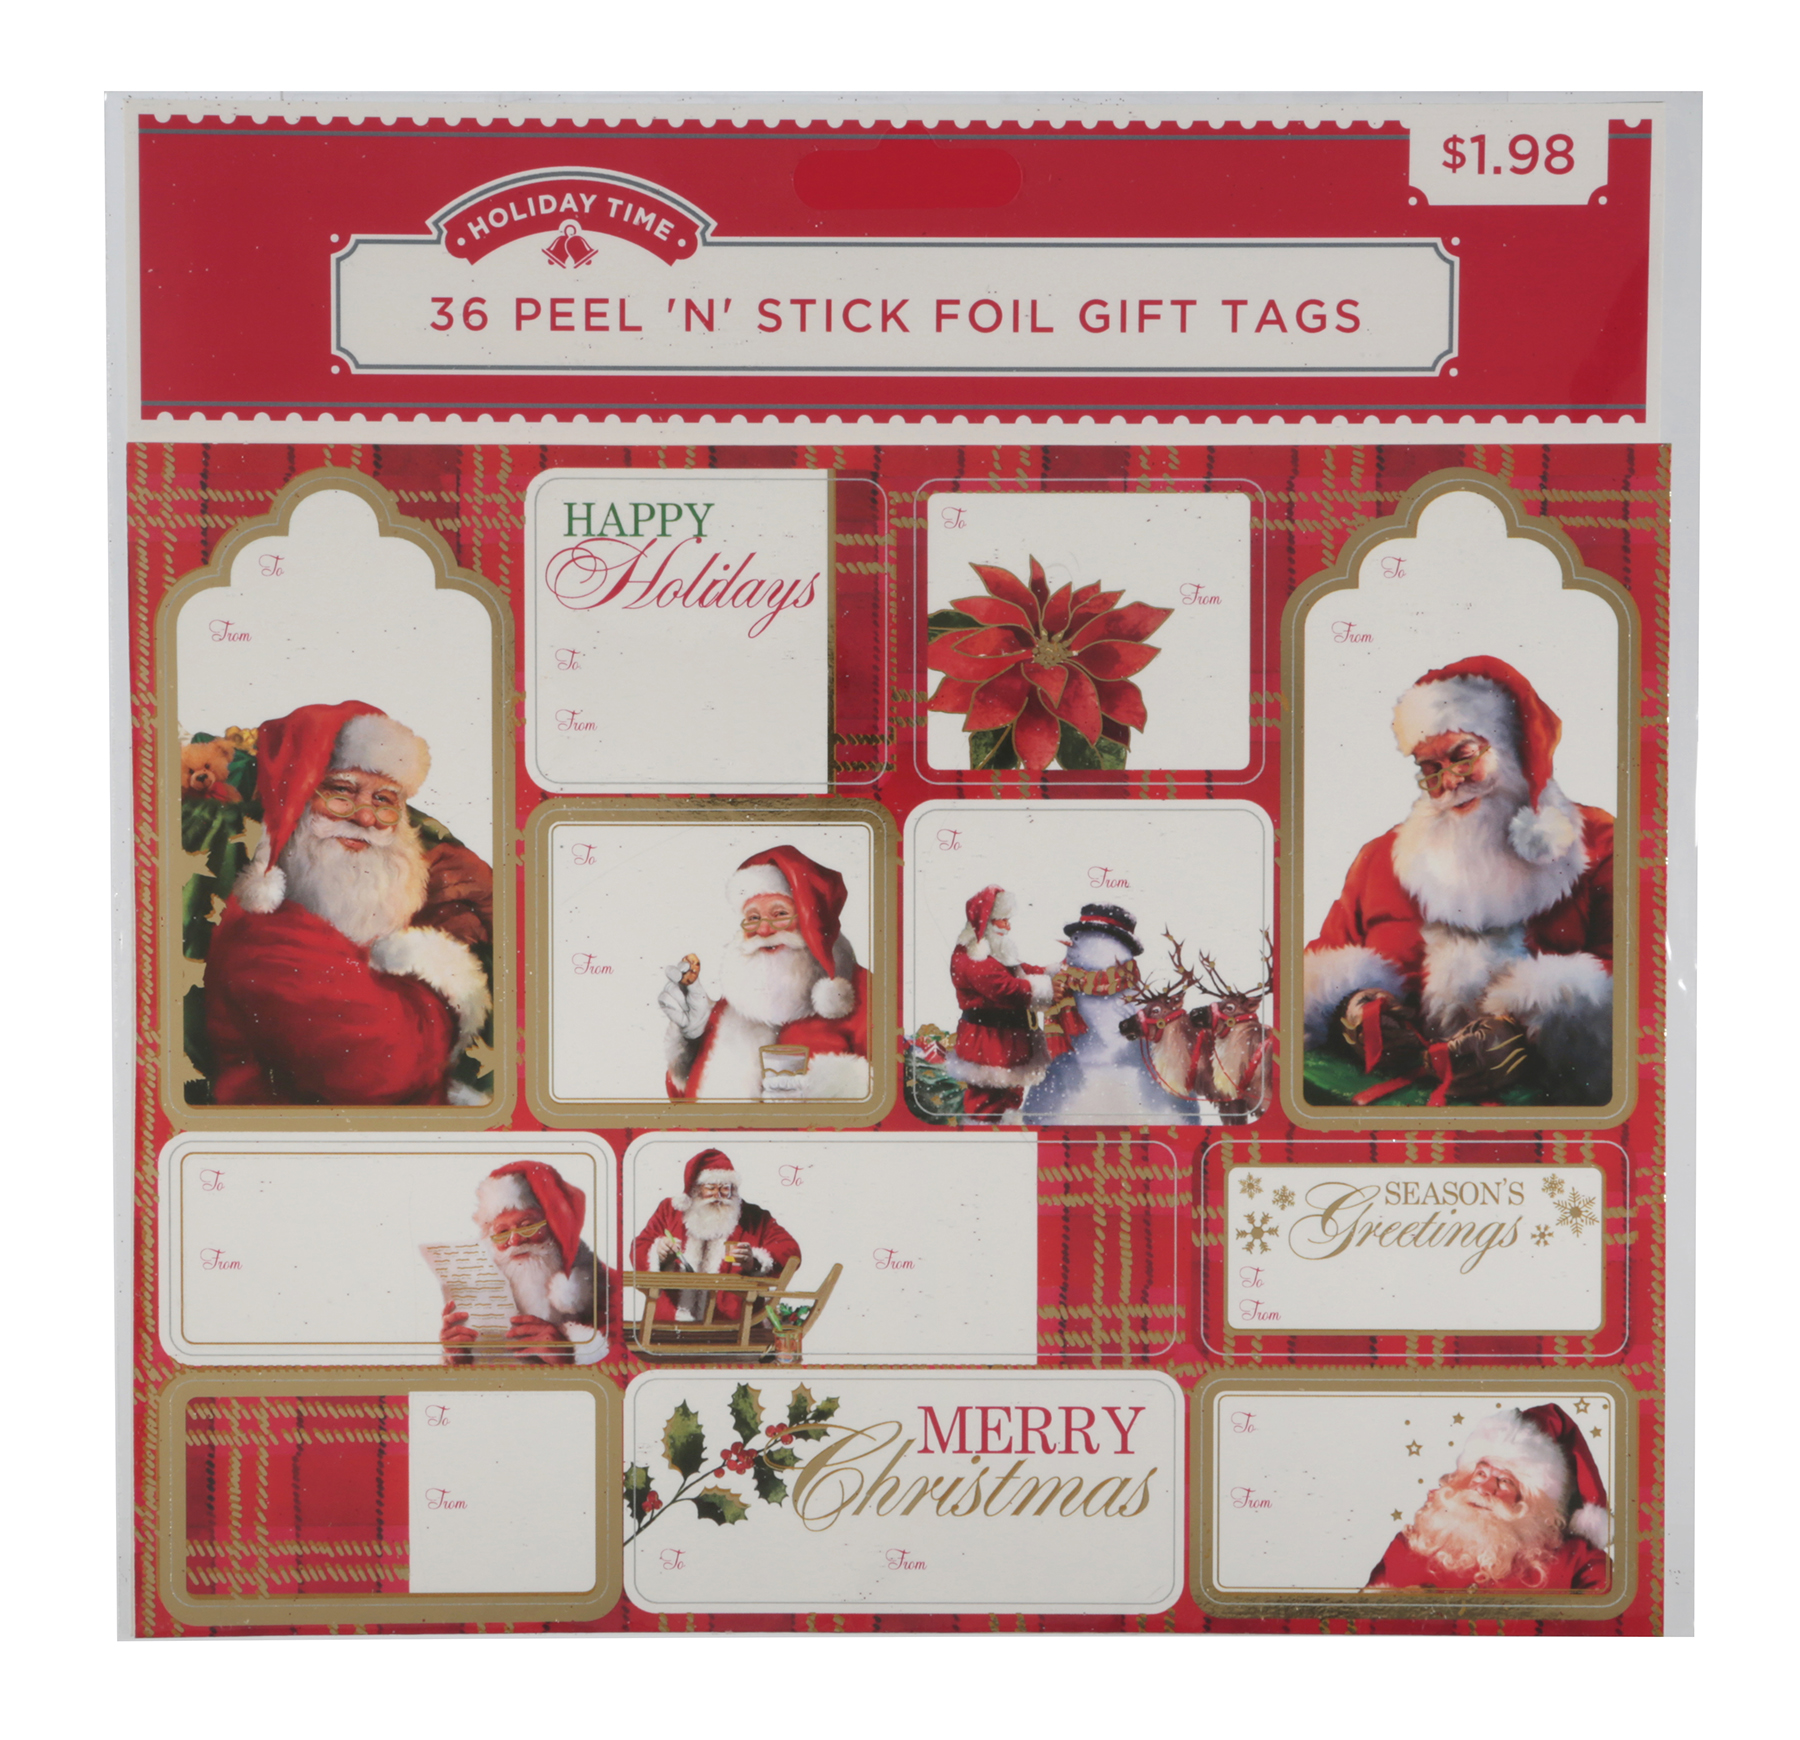 Holiday Time 36ct Pns Trd Fl Tag